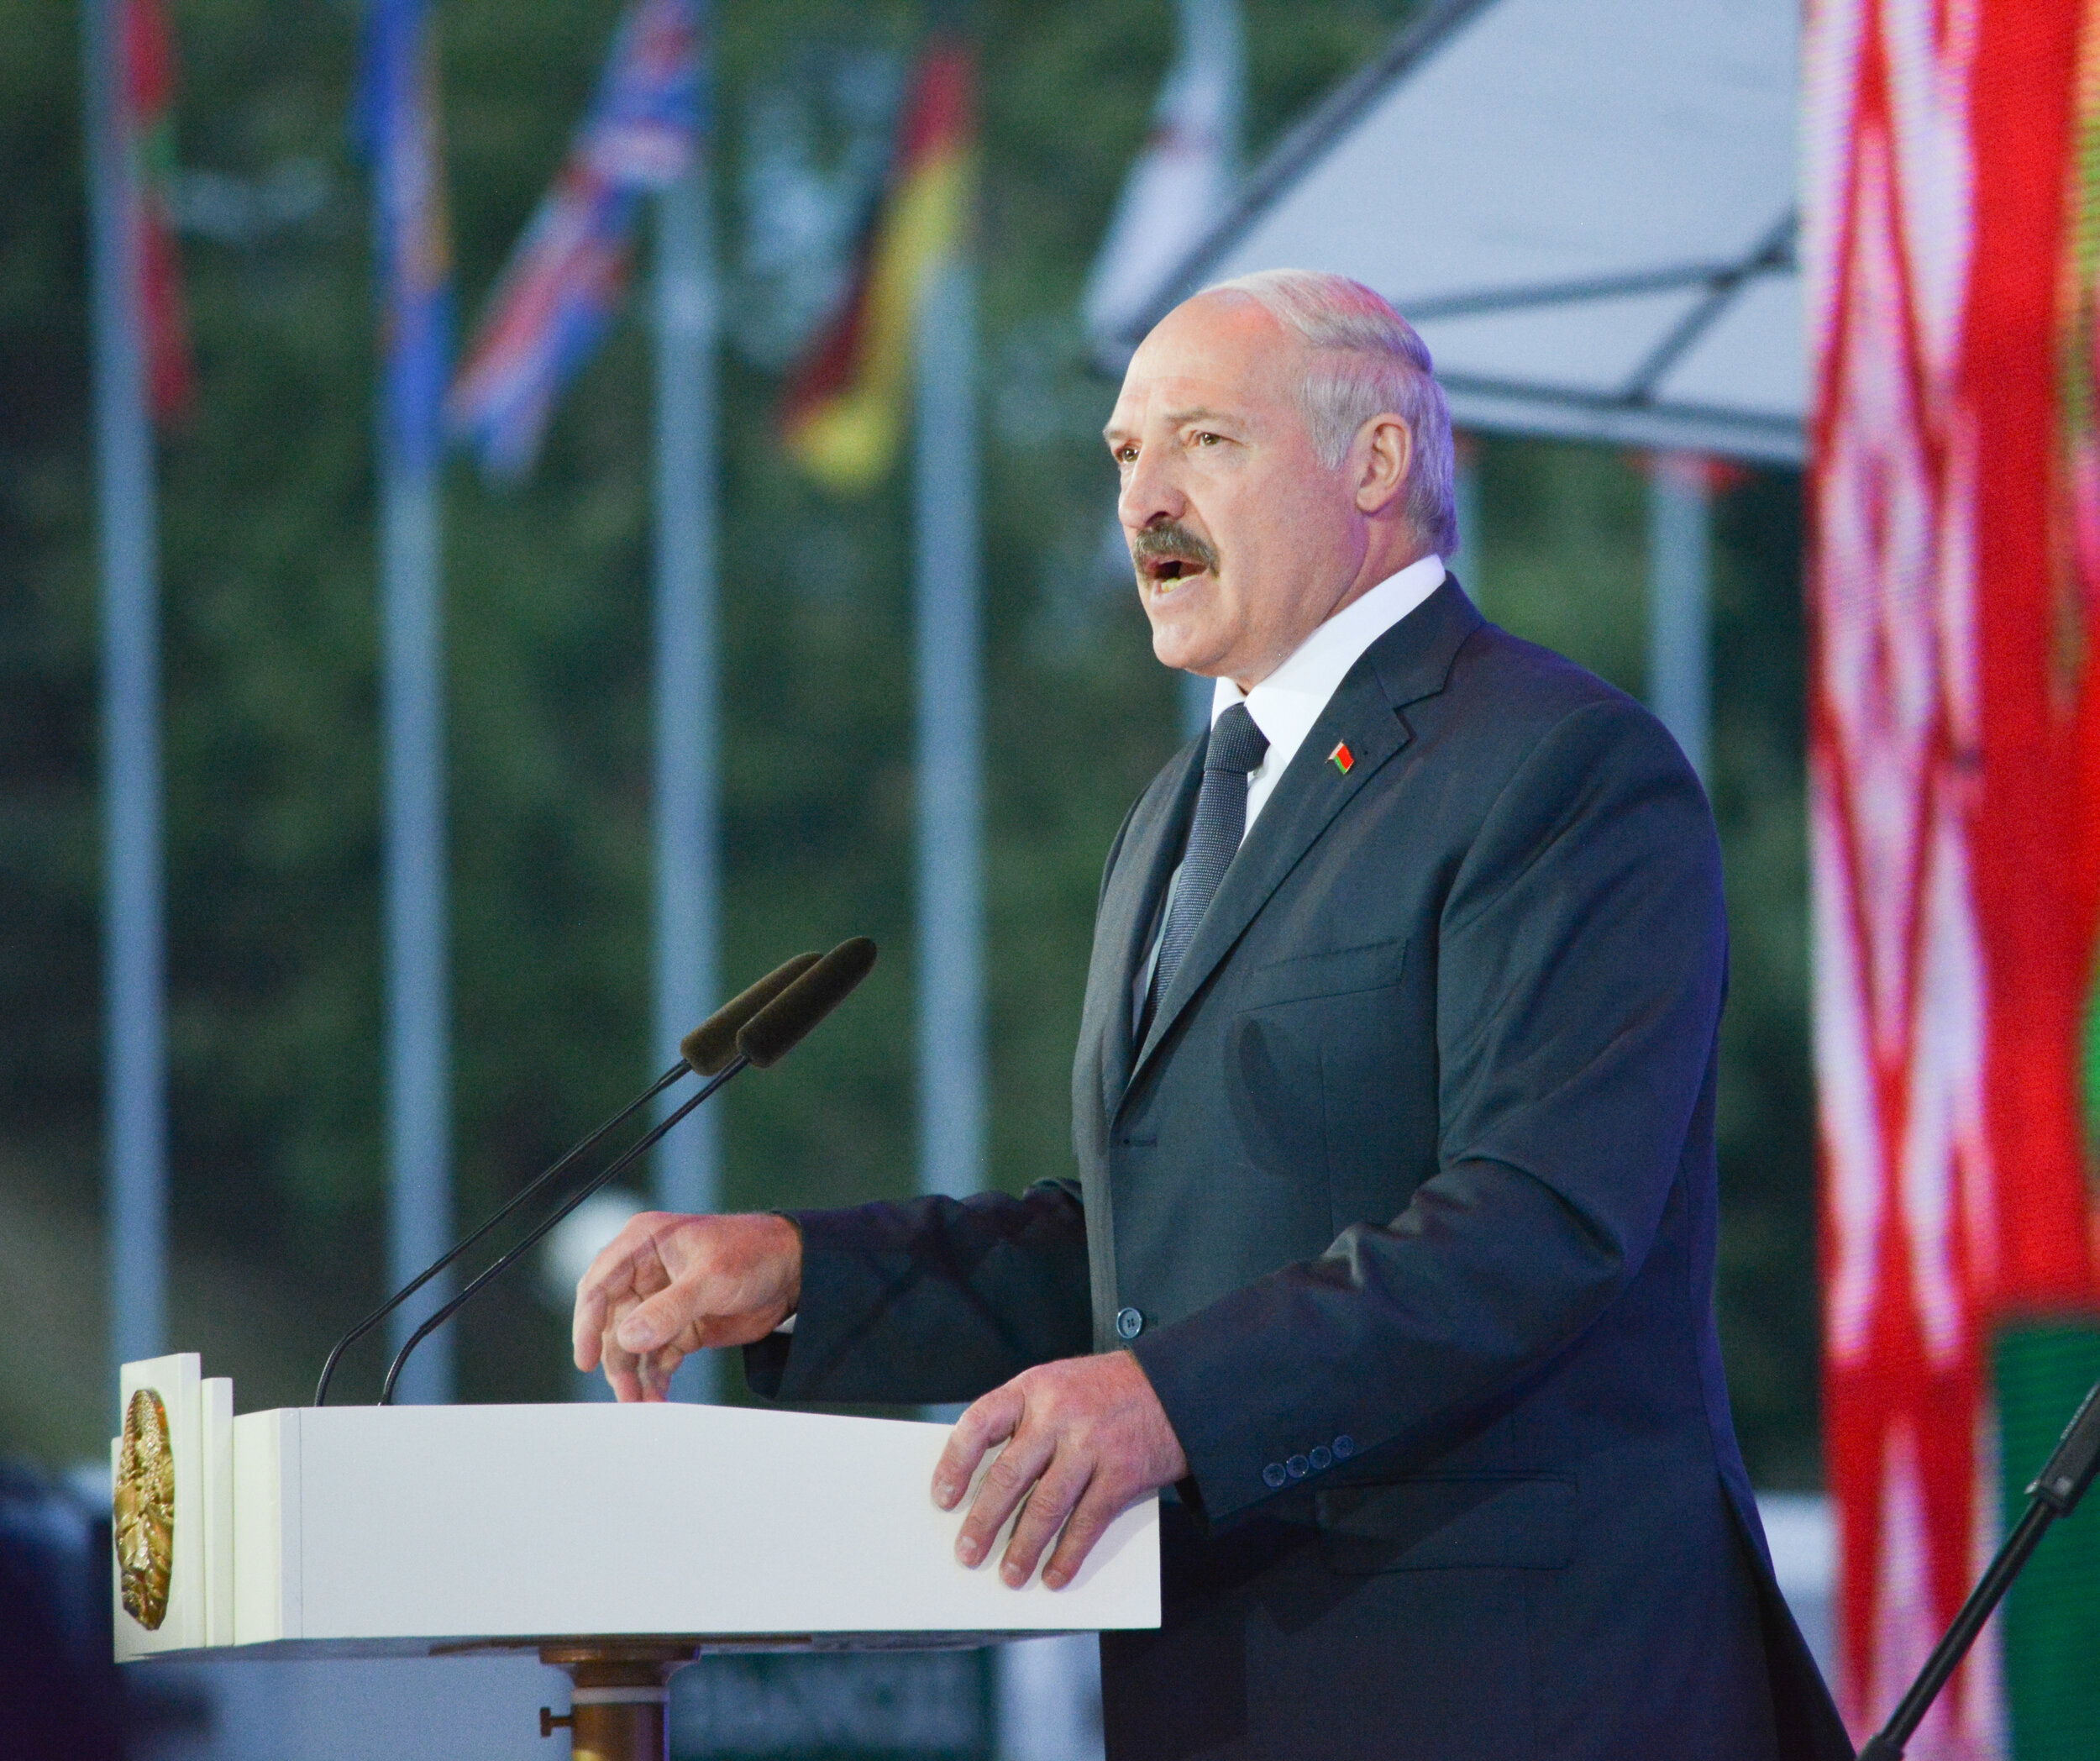 After expelling the American ambassador in 2008, Lukashenko has announced a thaw in the US-Belorussian diplomatic relationship. (Wikimedia Commons)